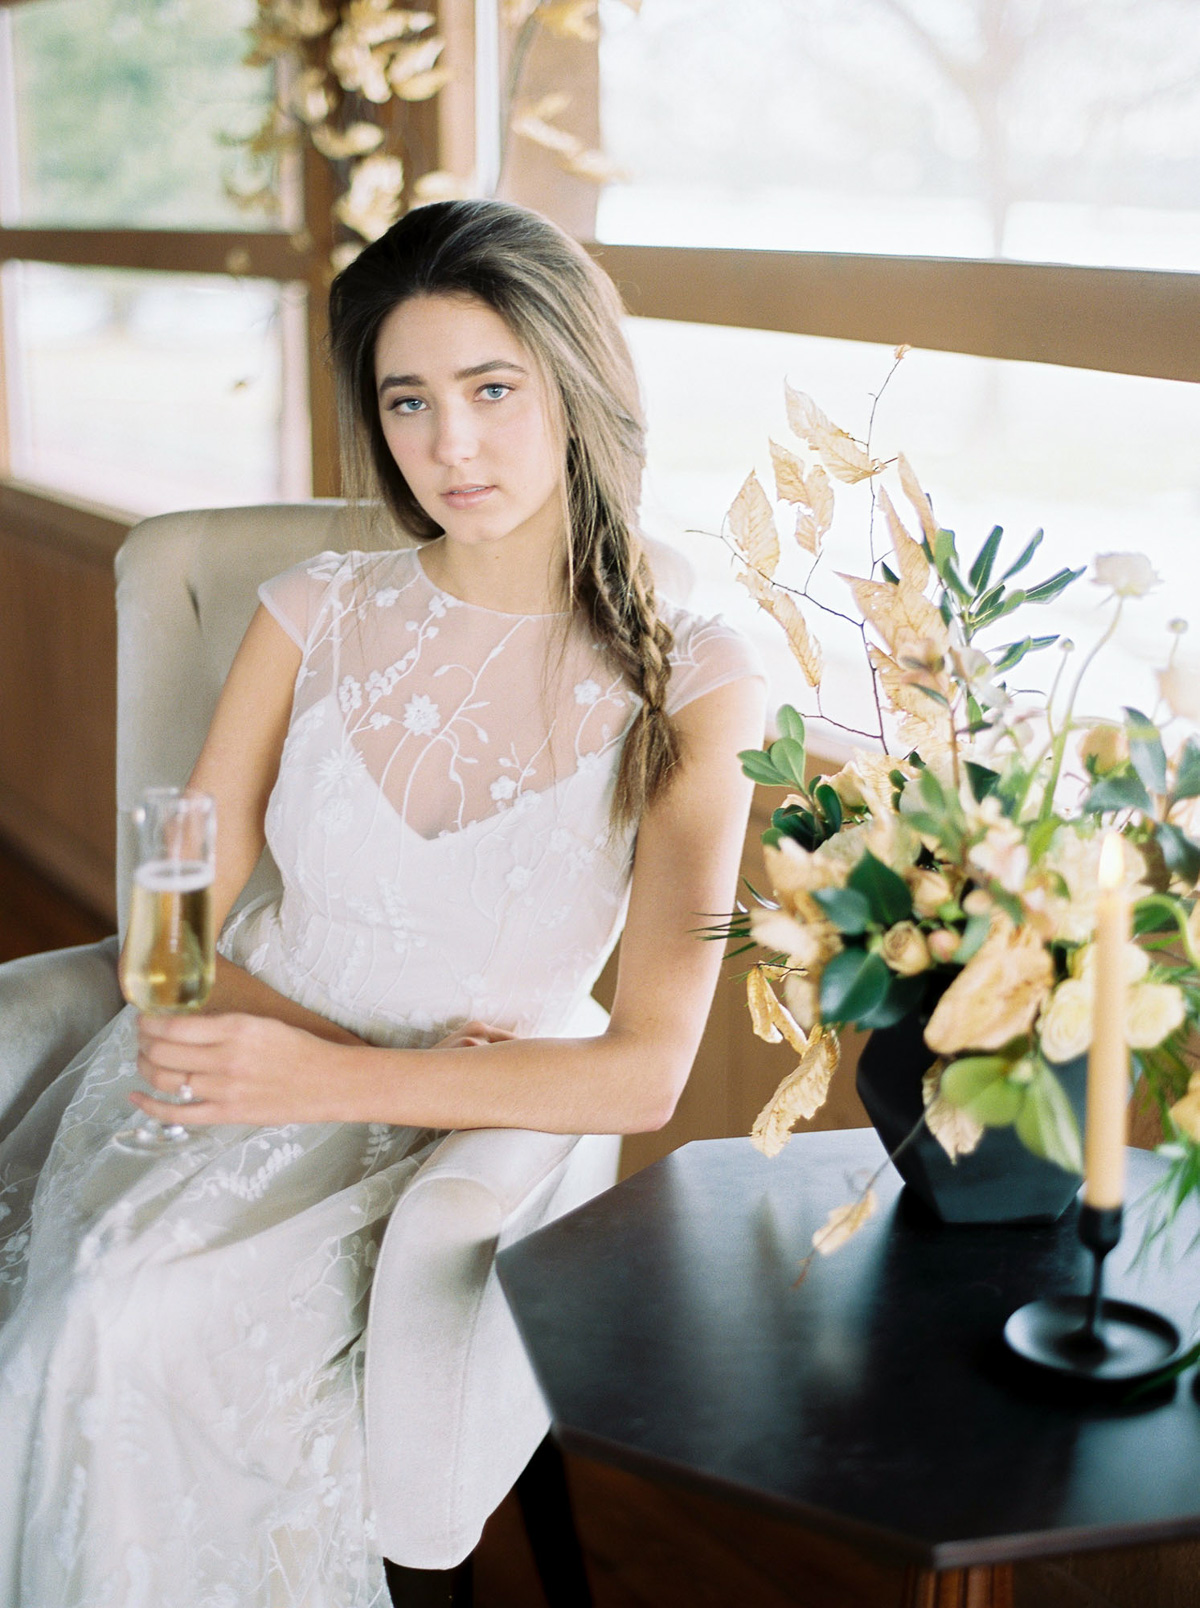 will-reid-photo-vineyard-bride-swish-list-kurtz-orchards-market-niagara-on-the-lake-wedding-editorial-38.jpg